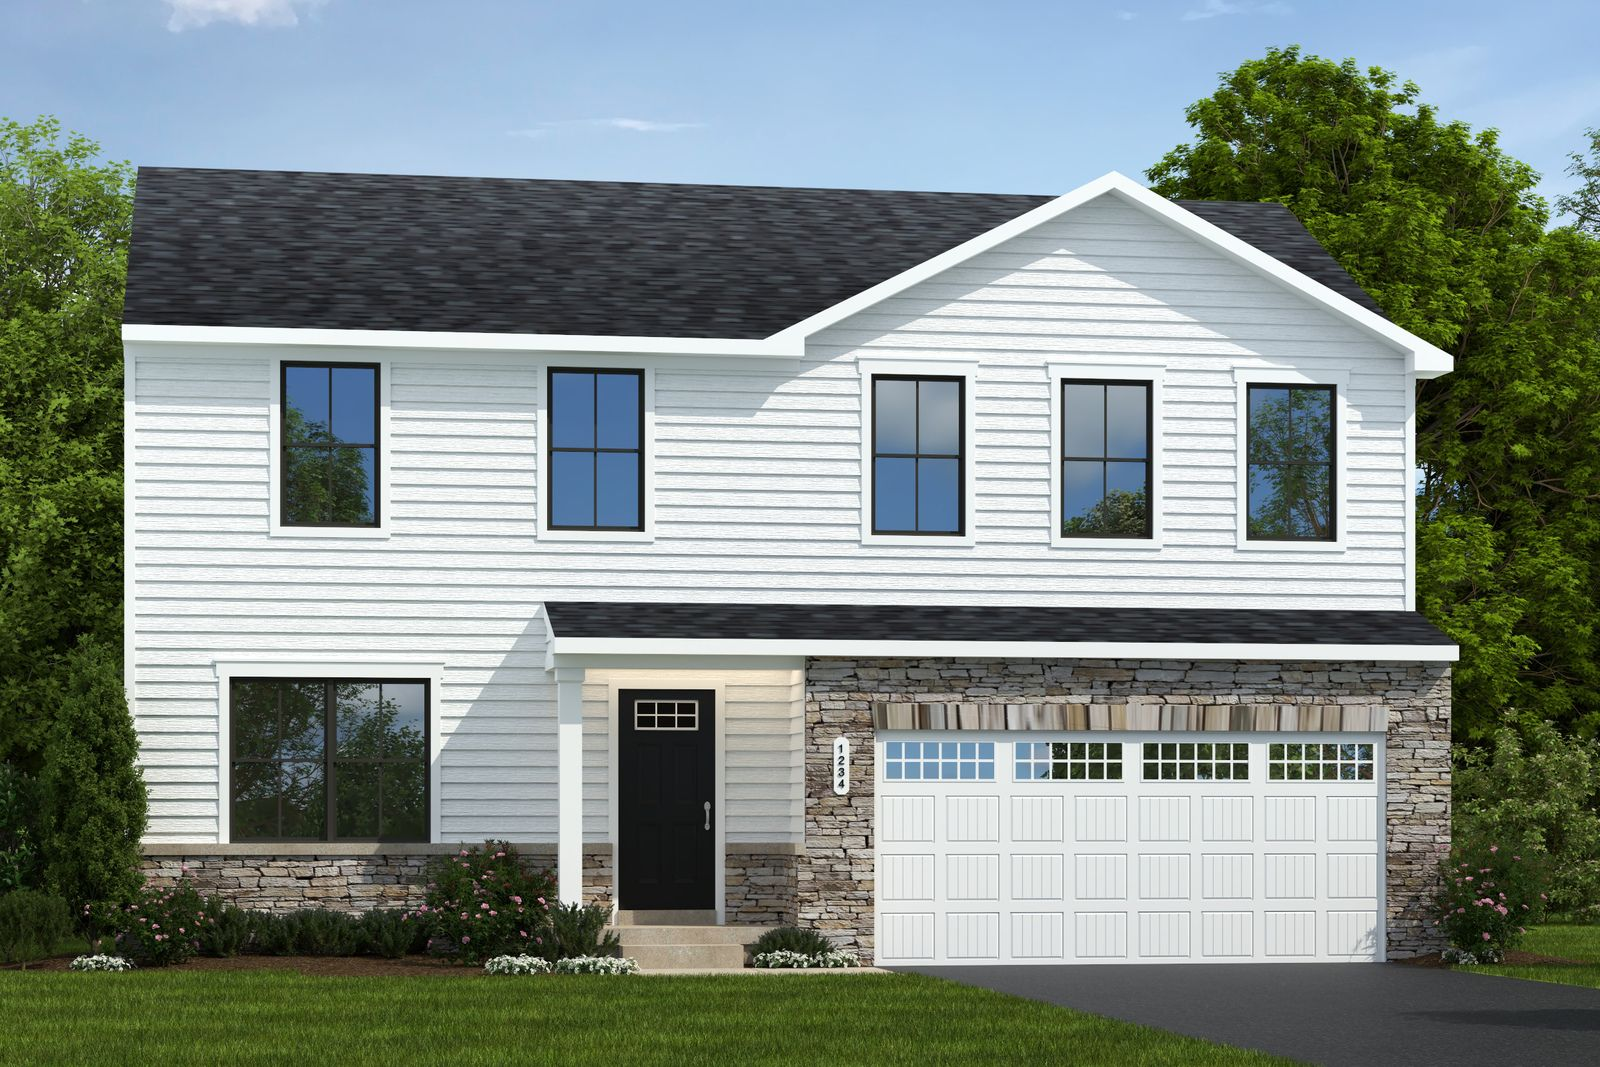 Welcome home to Woodlands at Morrow!:Best kept secret in Little Miami Schools with beautiful wooded homesites and value that can't be beat! Included basements, all appliances, only minutes from I-71.Schedule your visit today!